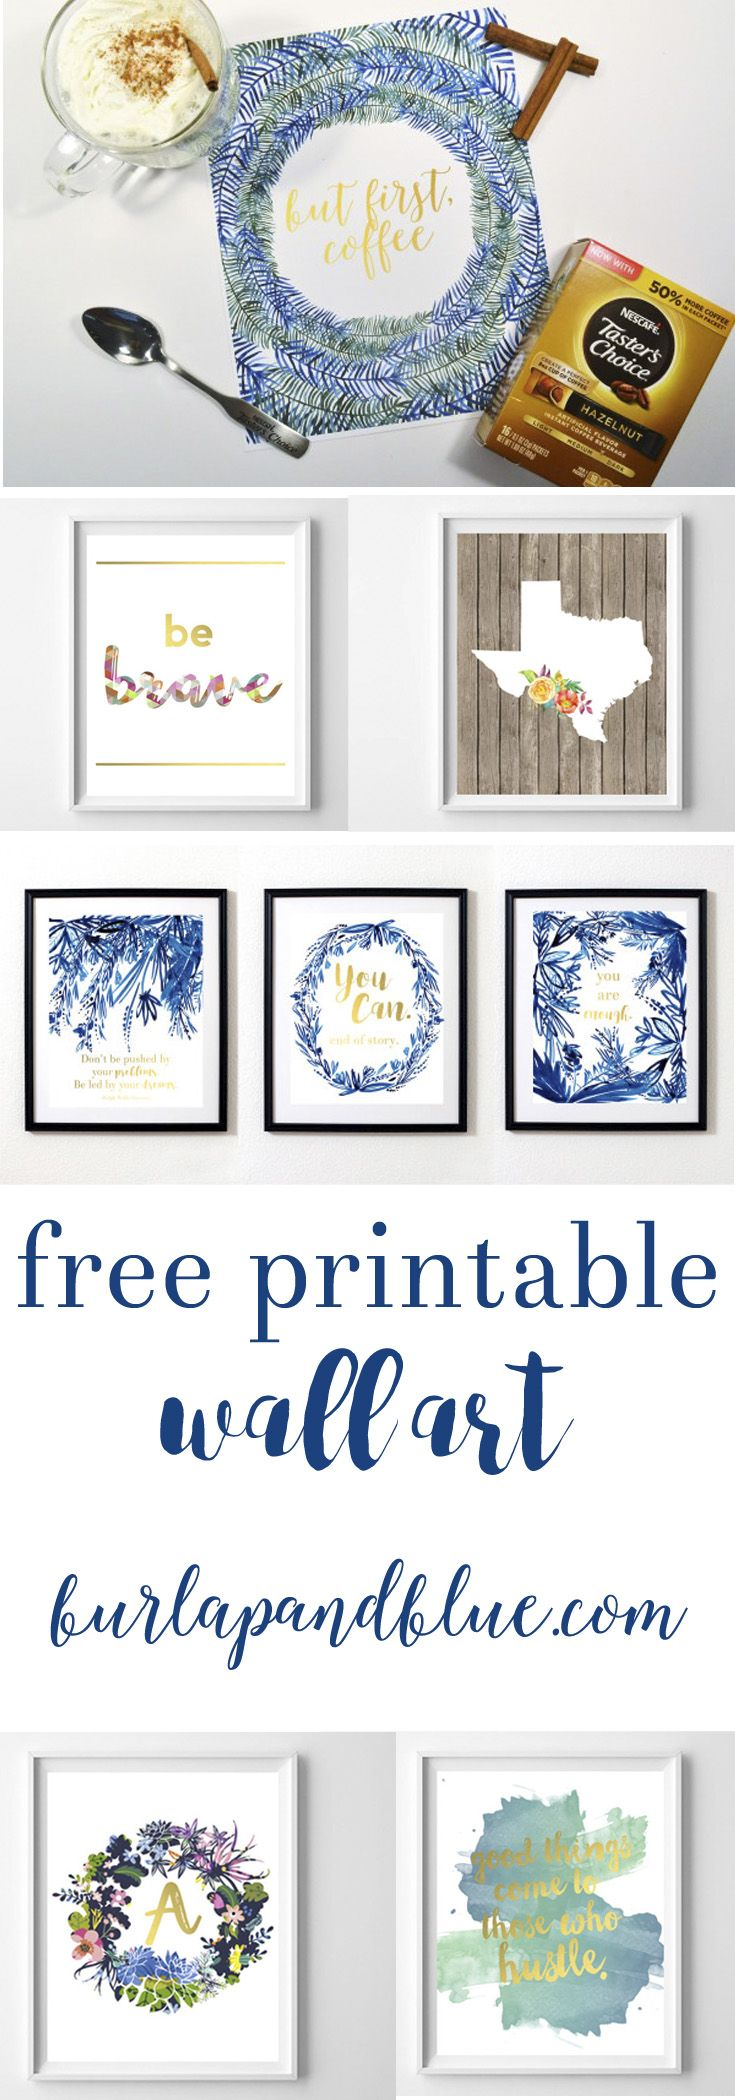 free printable wall art over 50 designsstyles printables perfect for nursery - Free Printable Art For Kids